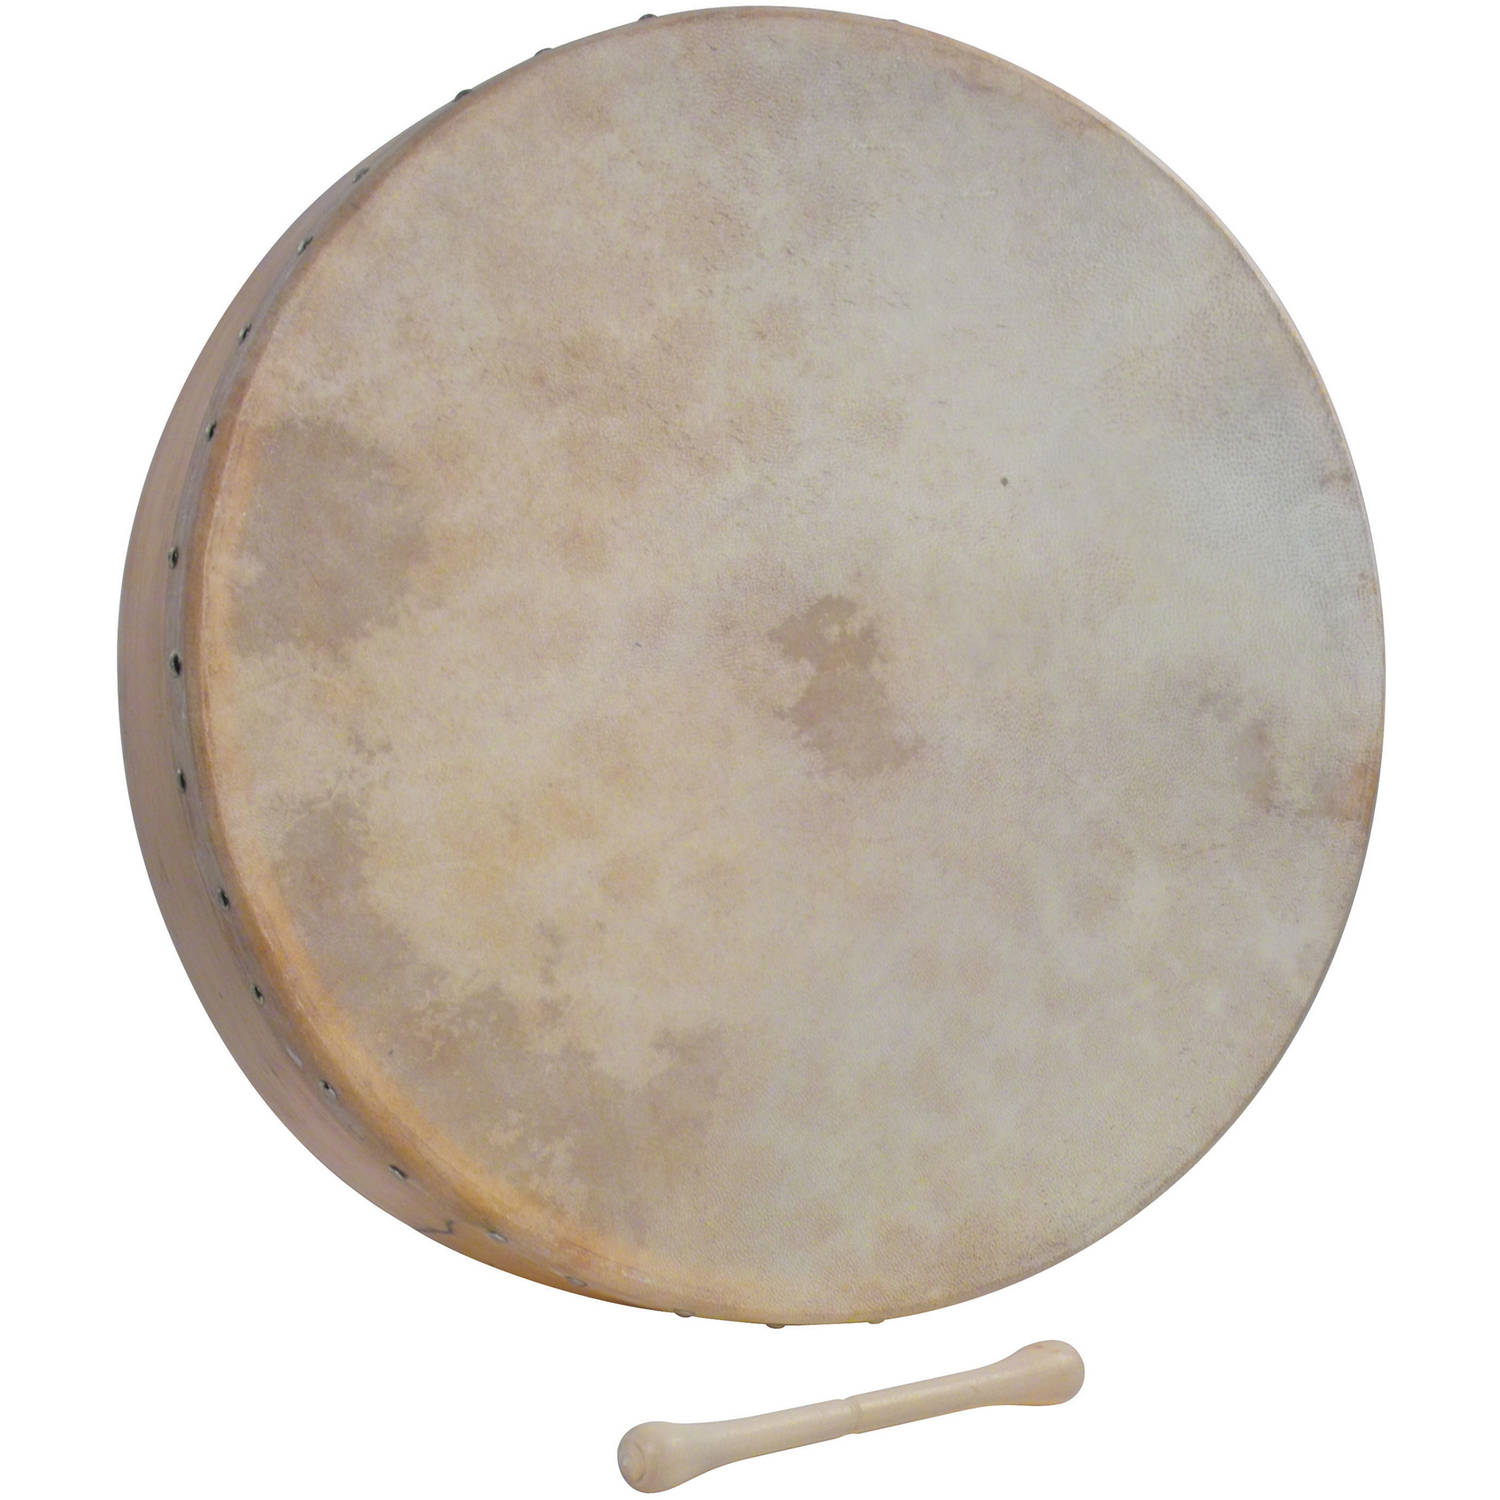 Trinity College TB-4 Irish Bodhran, Natural Blonde Rim